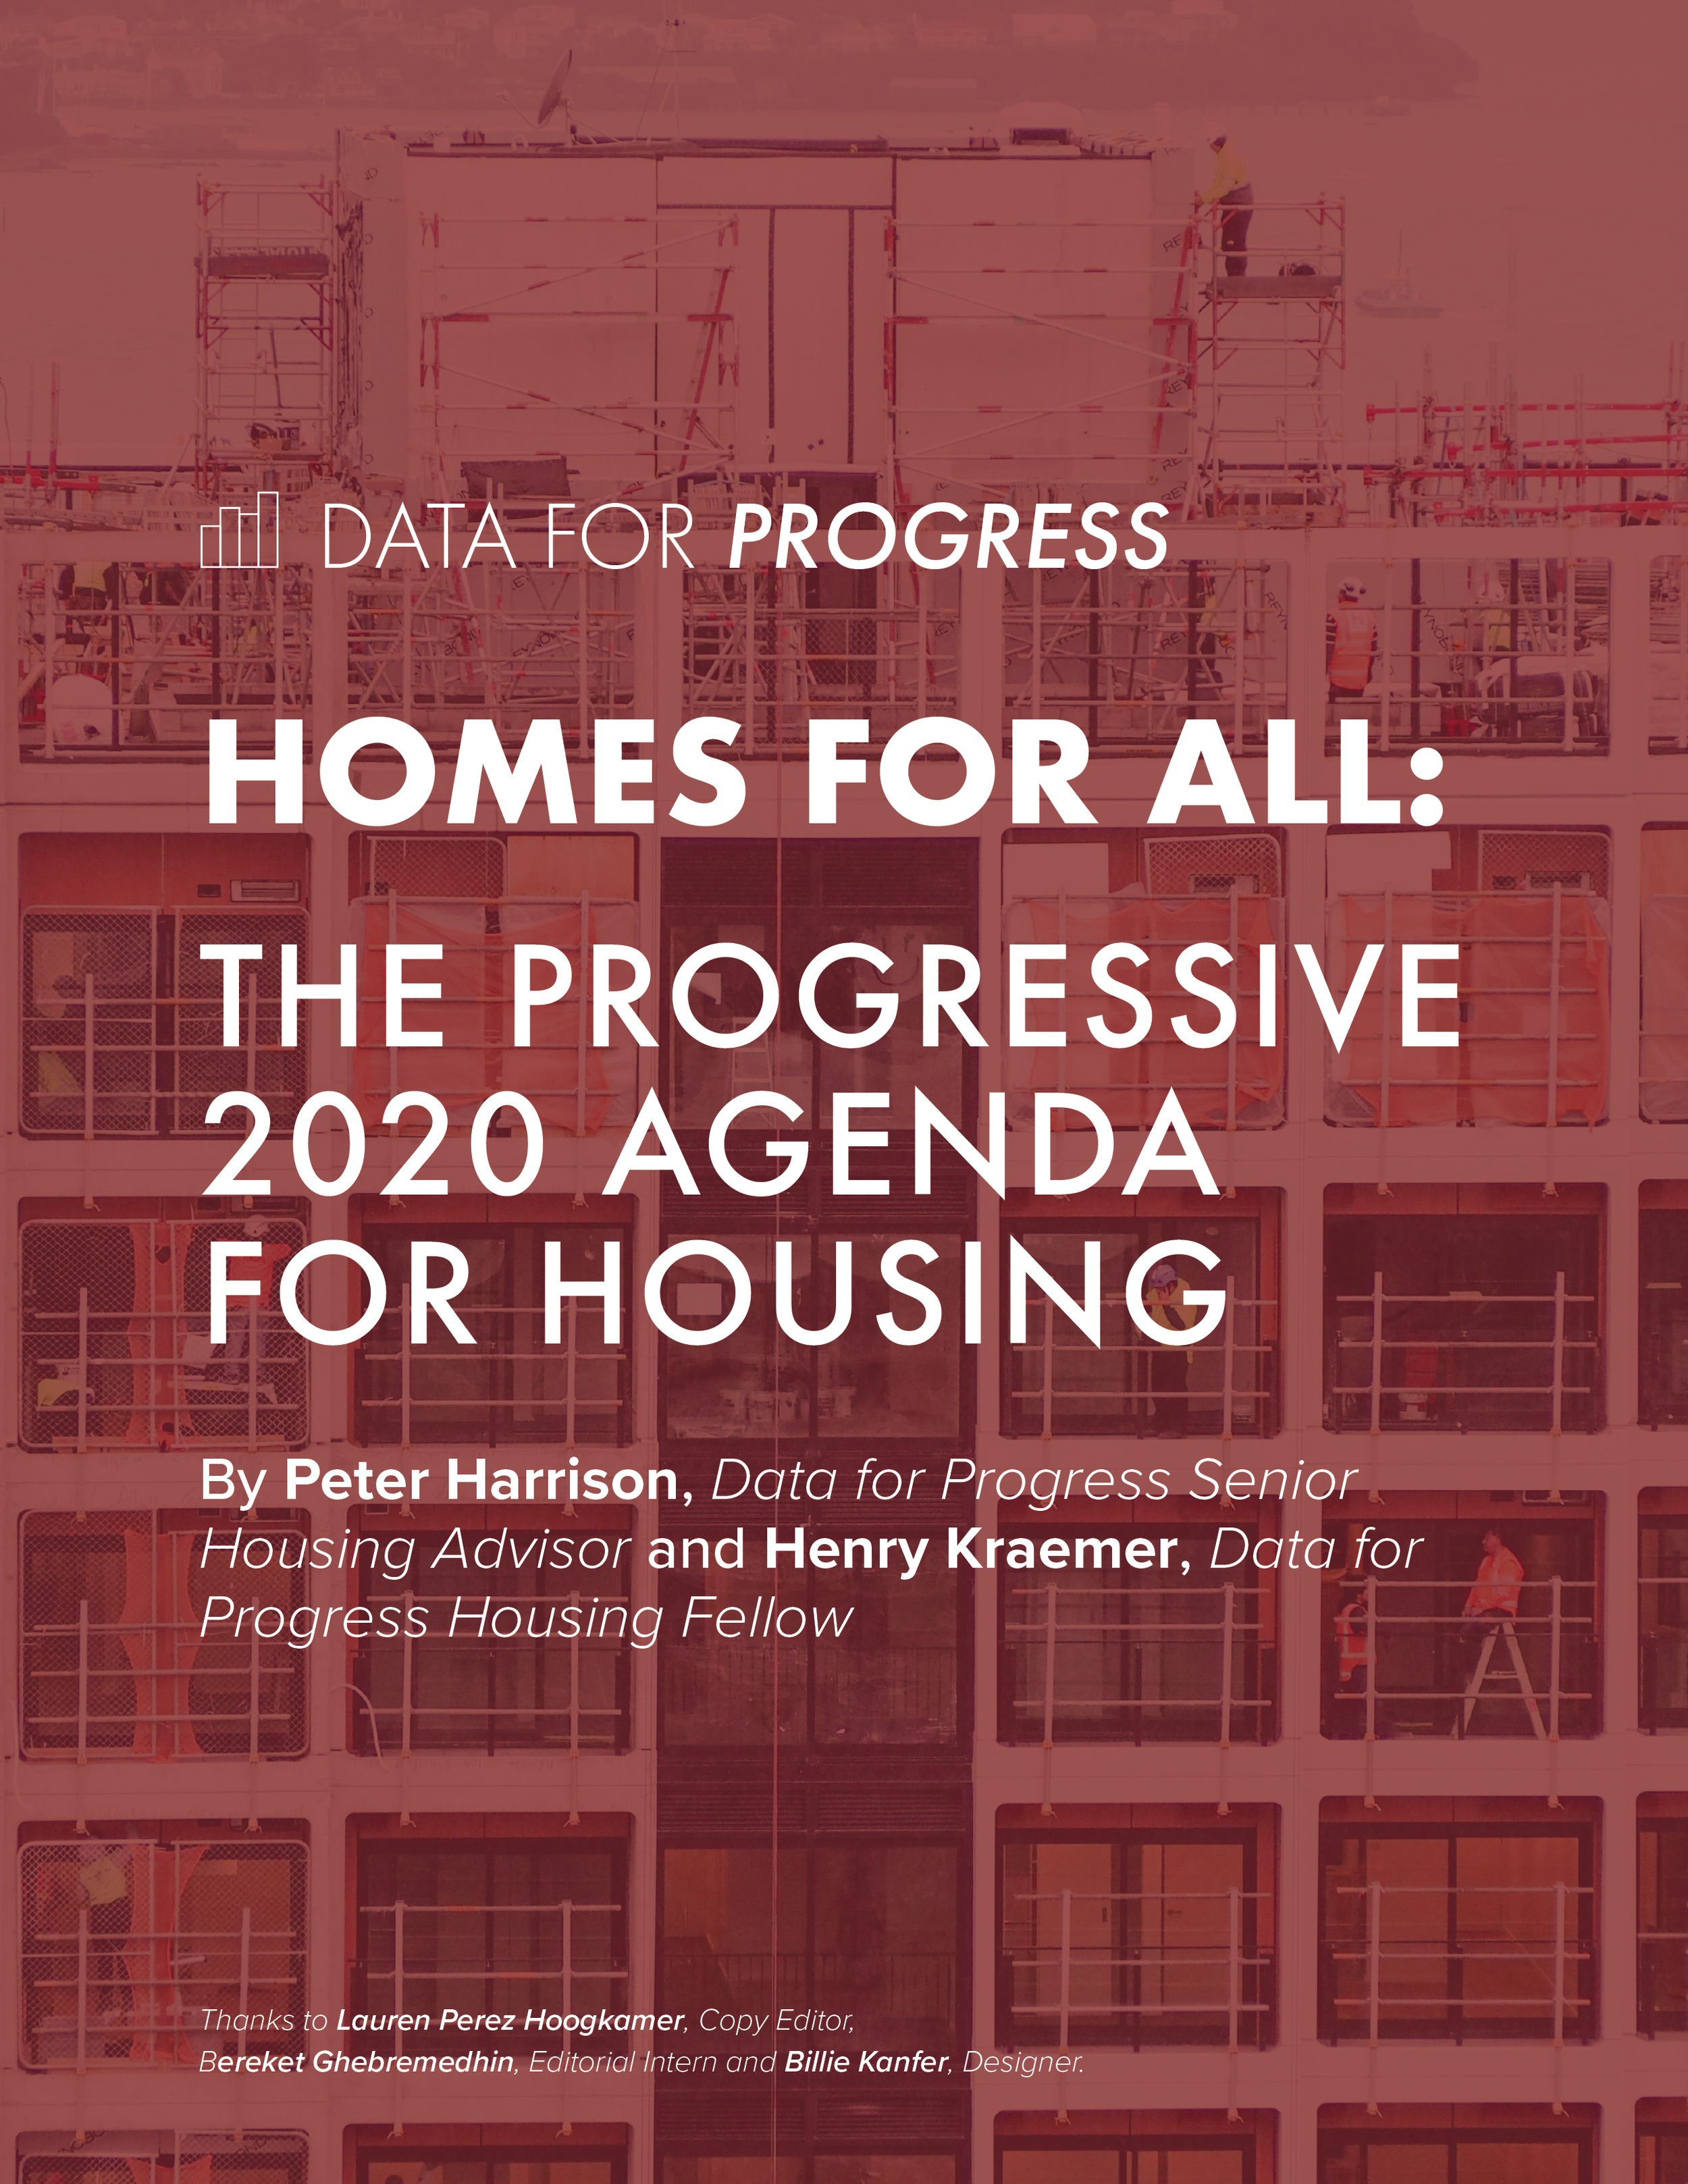 Homes for All: The Progressive 2020 Agenda for Housing